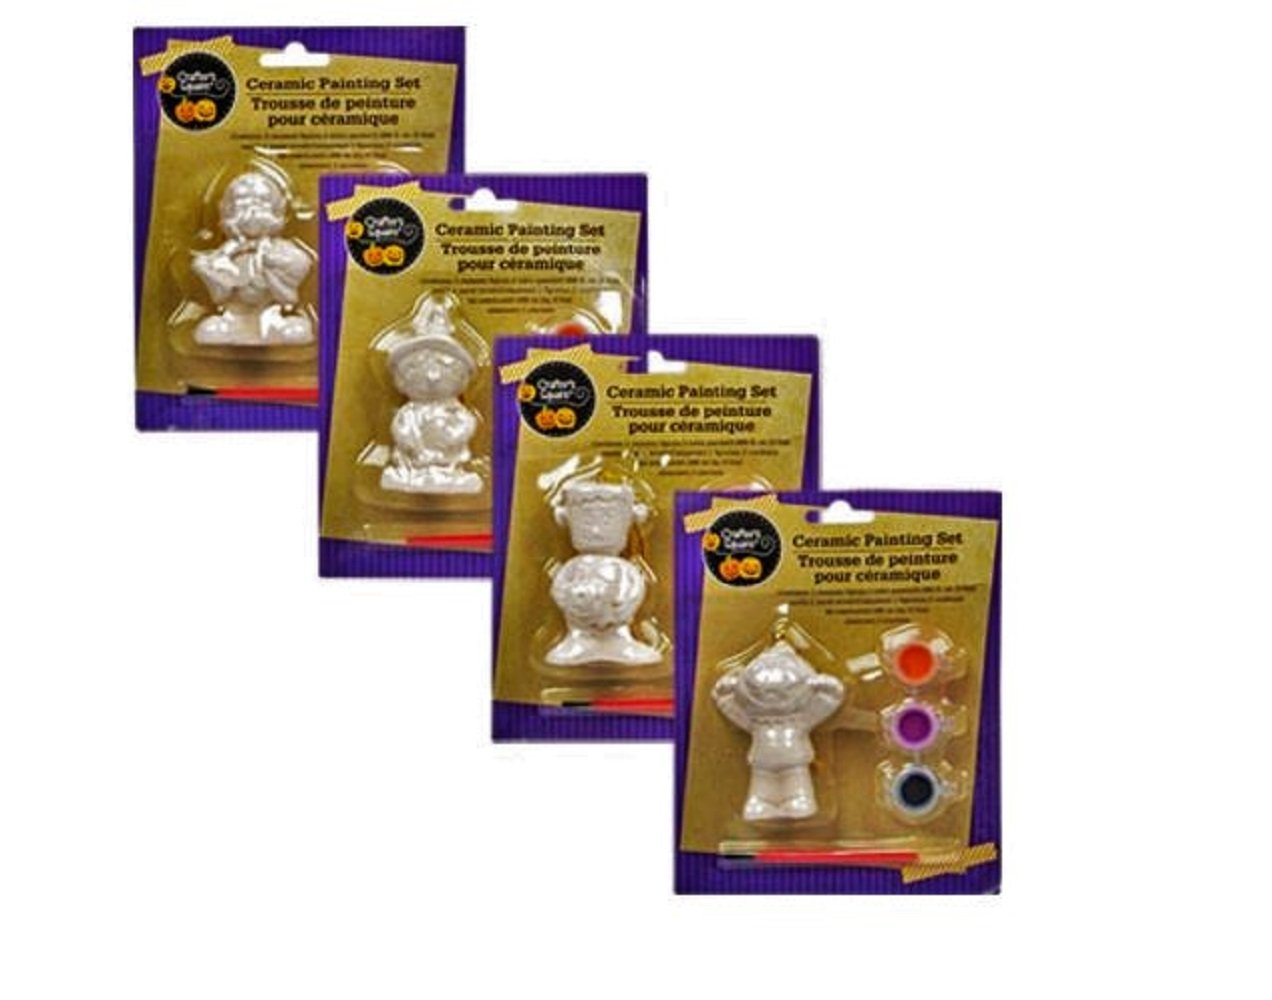 Halloween Figurine Ceramic Paint Sets, 4-set Bundle Crafter's Square